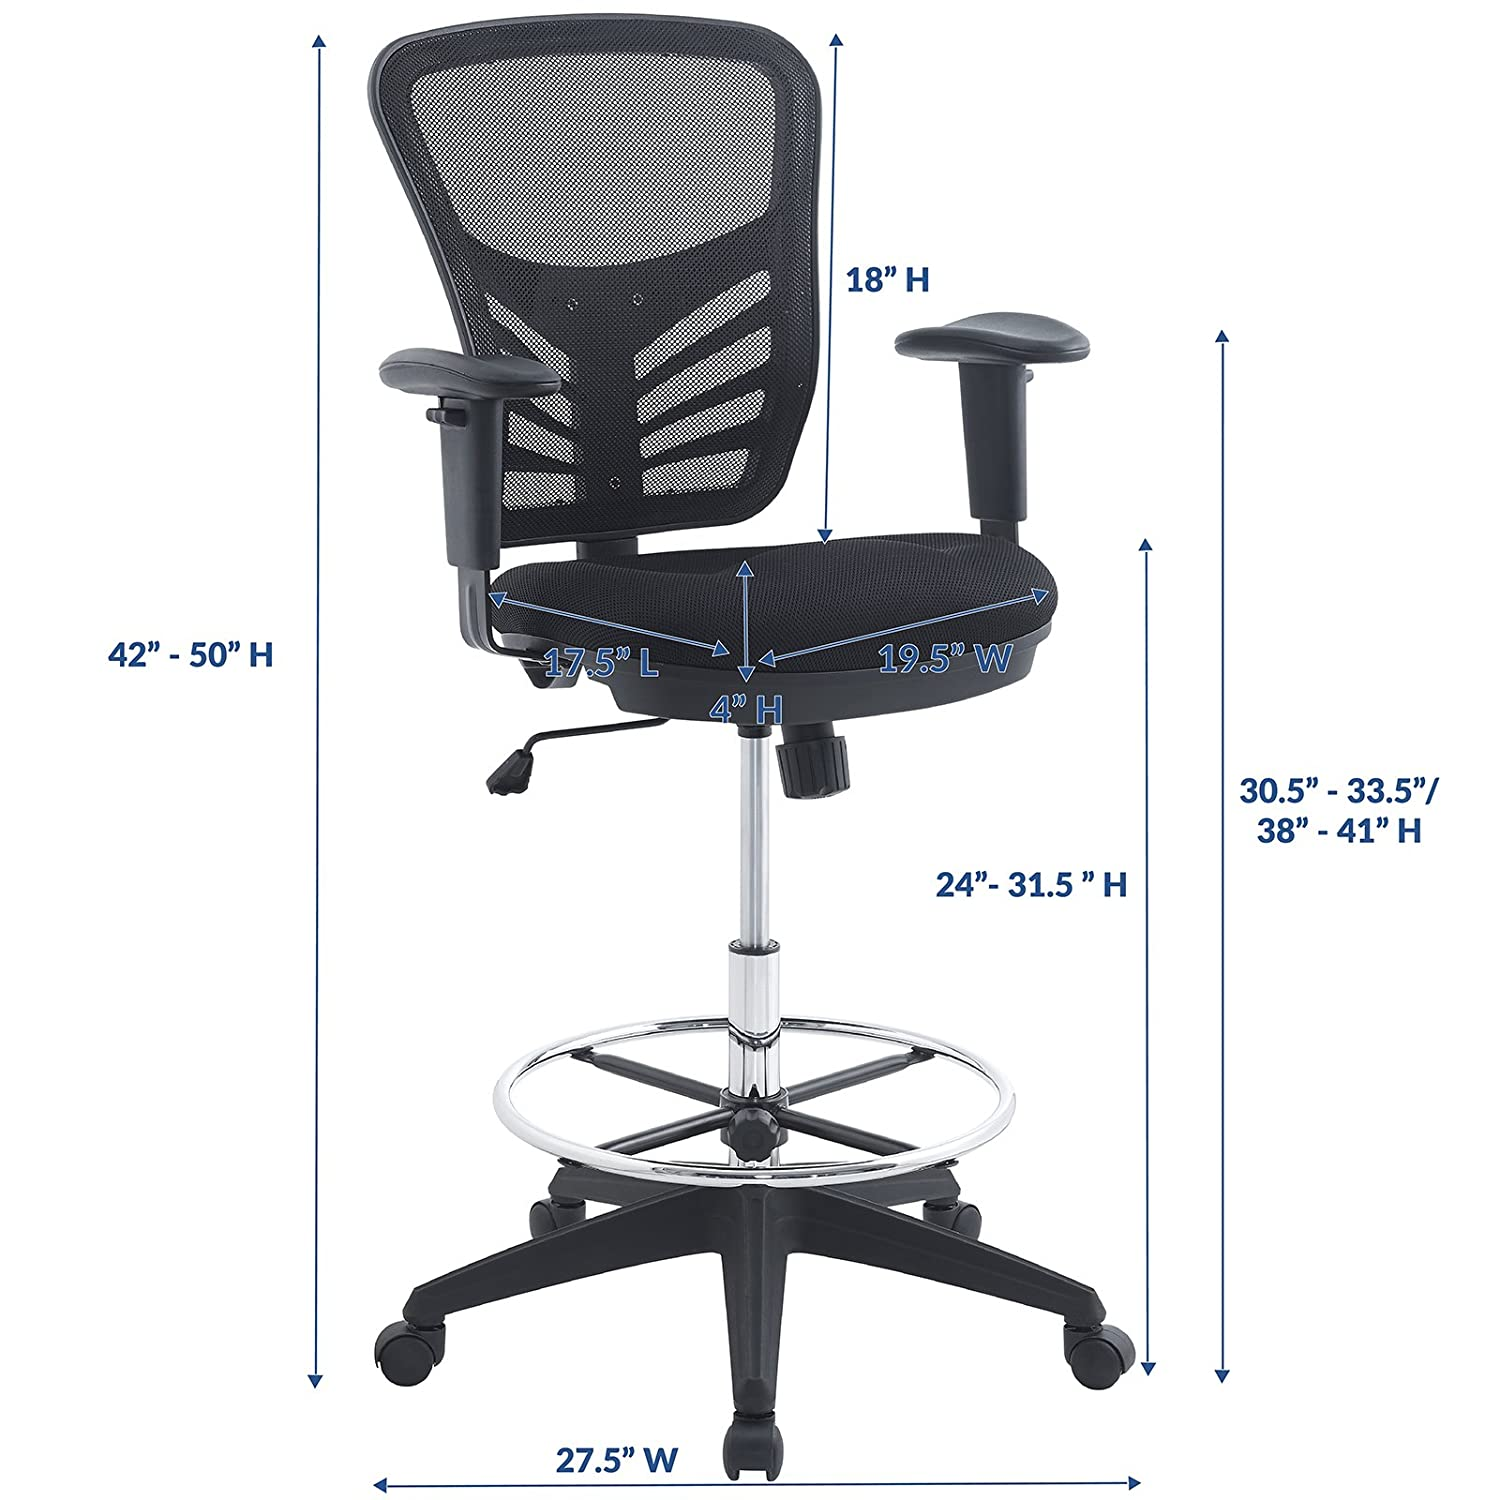 Exceptionnel Amazon.com: Modway Articulate Drafting Chair In Black   Reception Desk Chair    Tall Office Chair For Adjustable Standing Desks   Drafting Table Chair:  ...